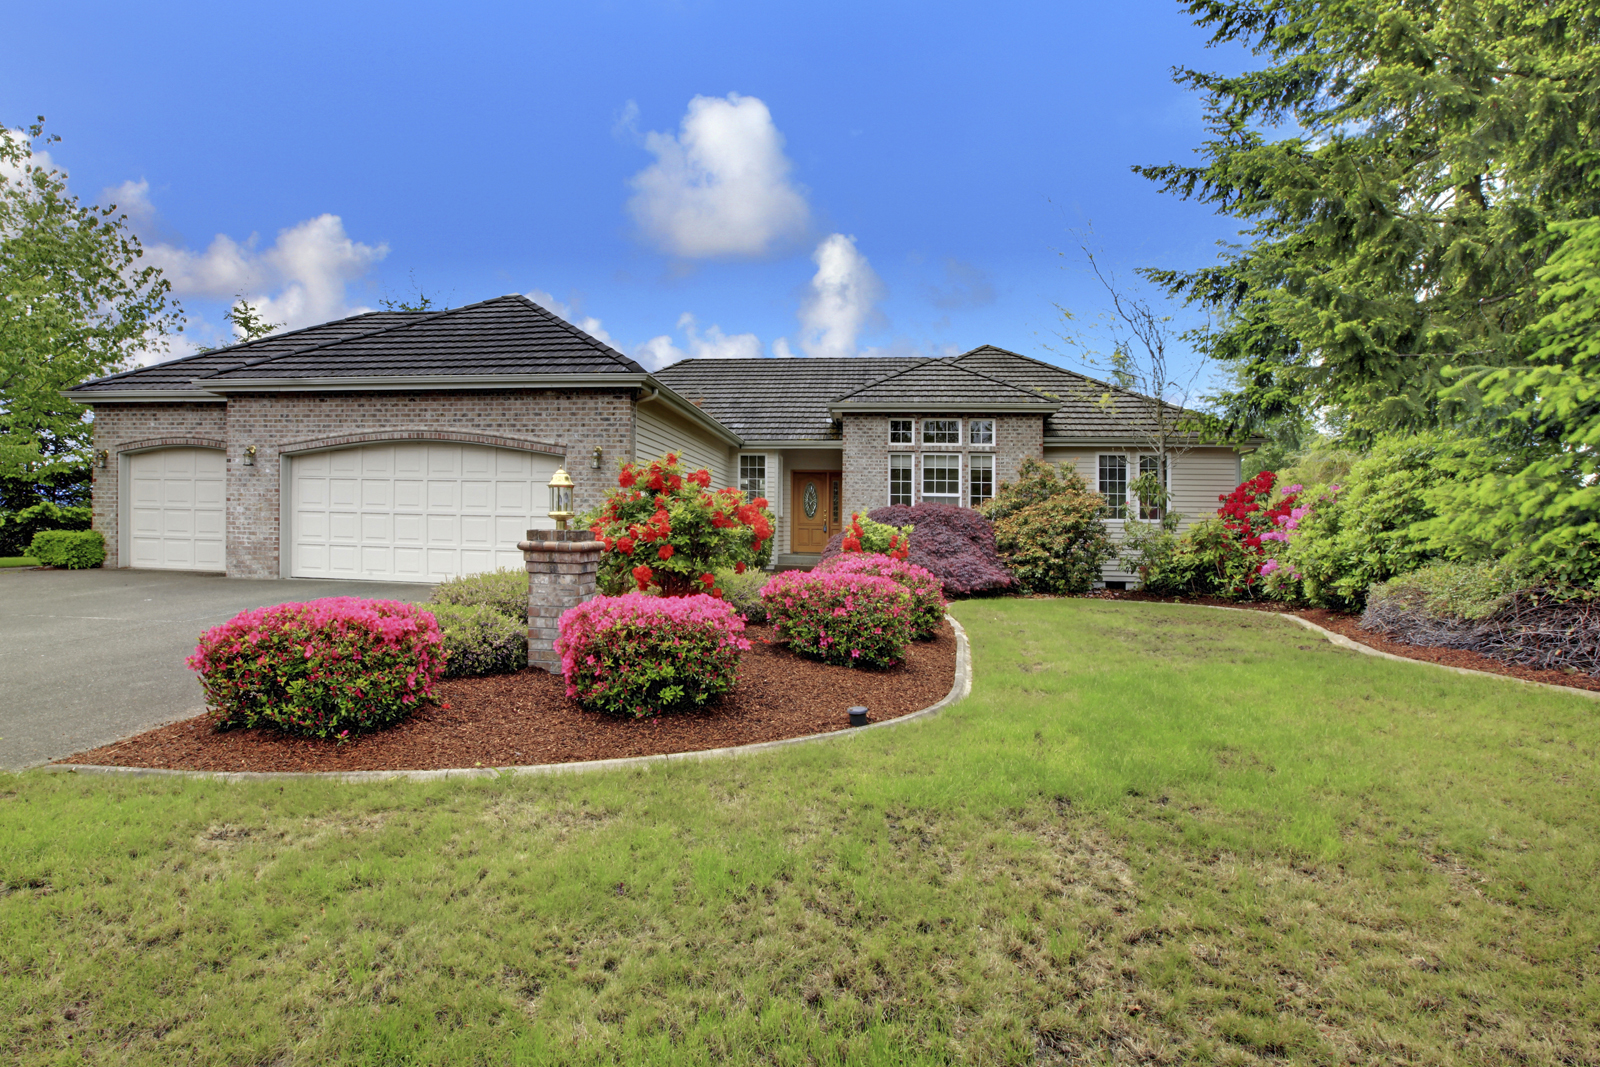 Adding Curb Appeal to Entice Buyers